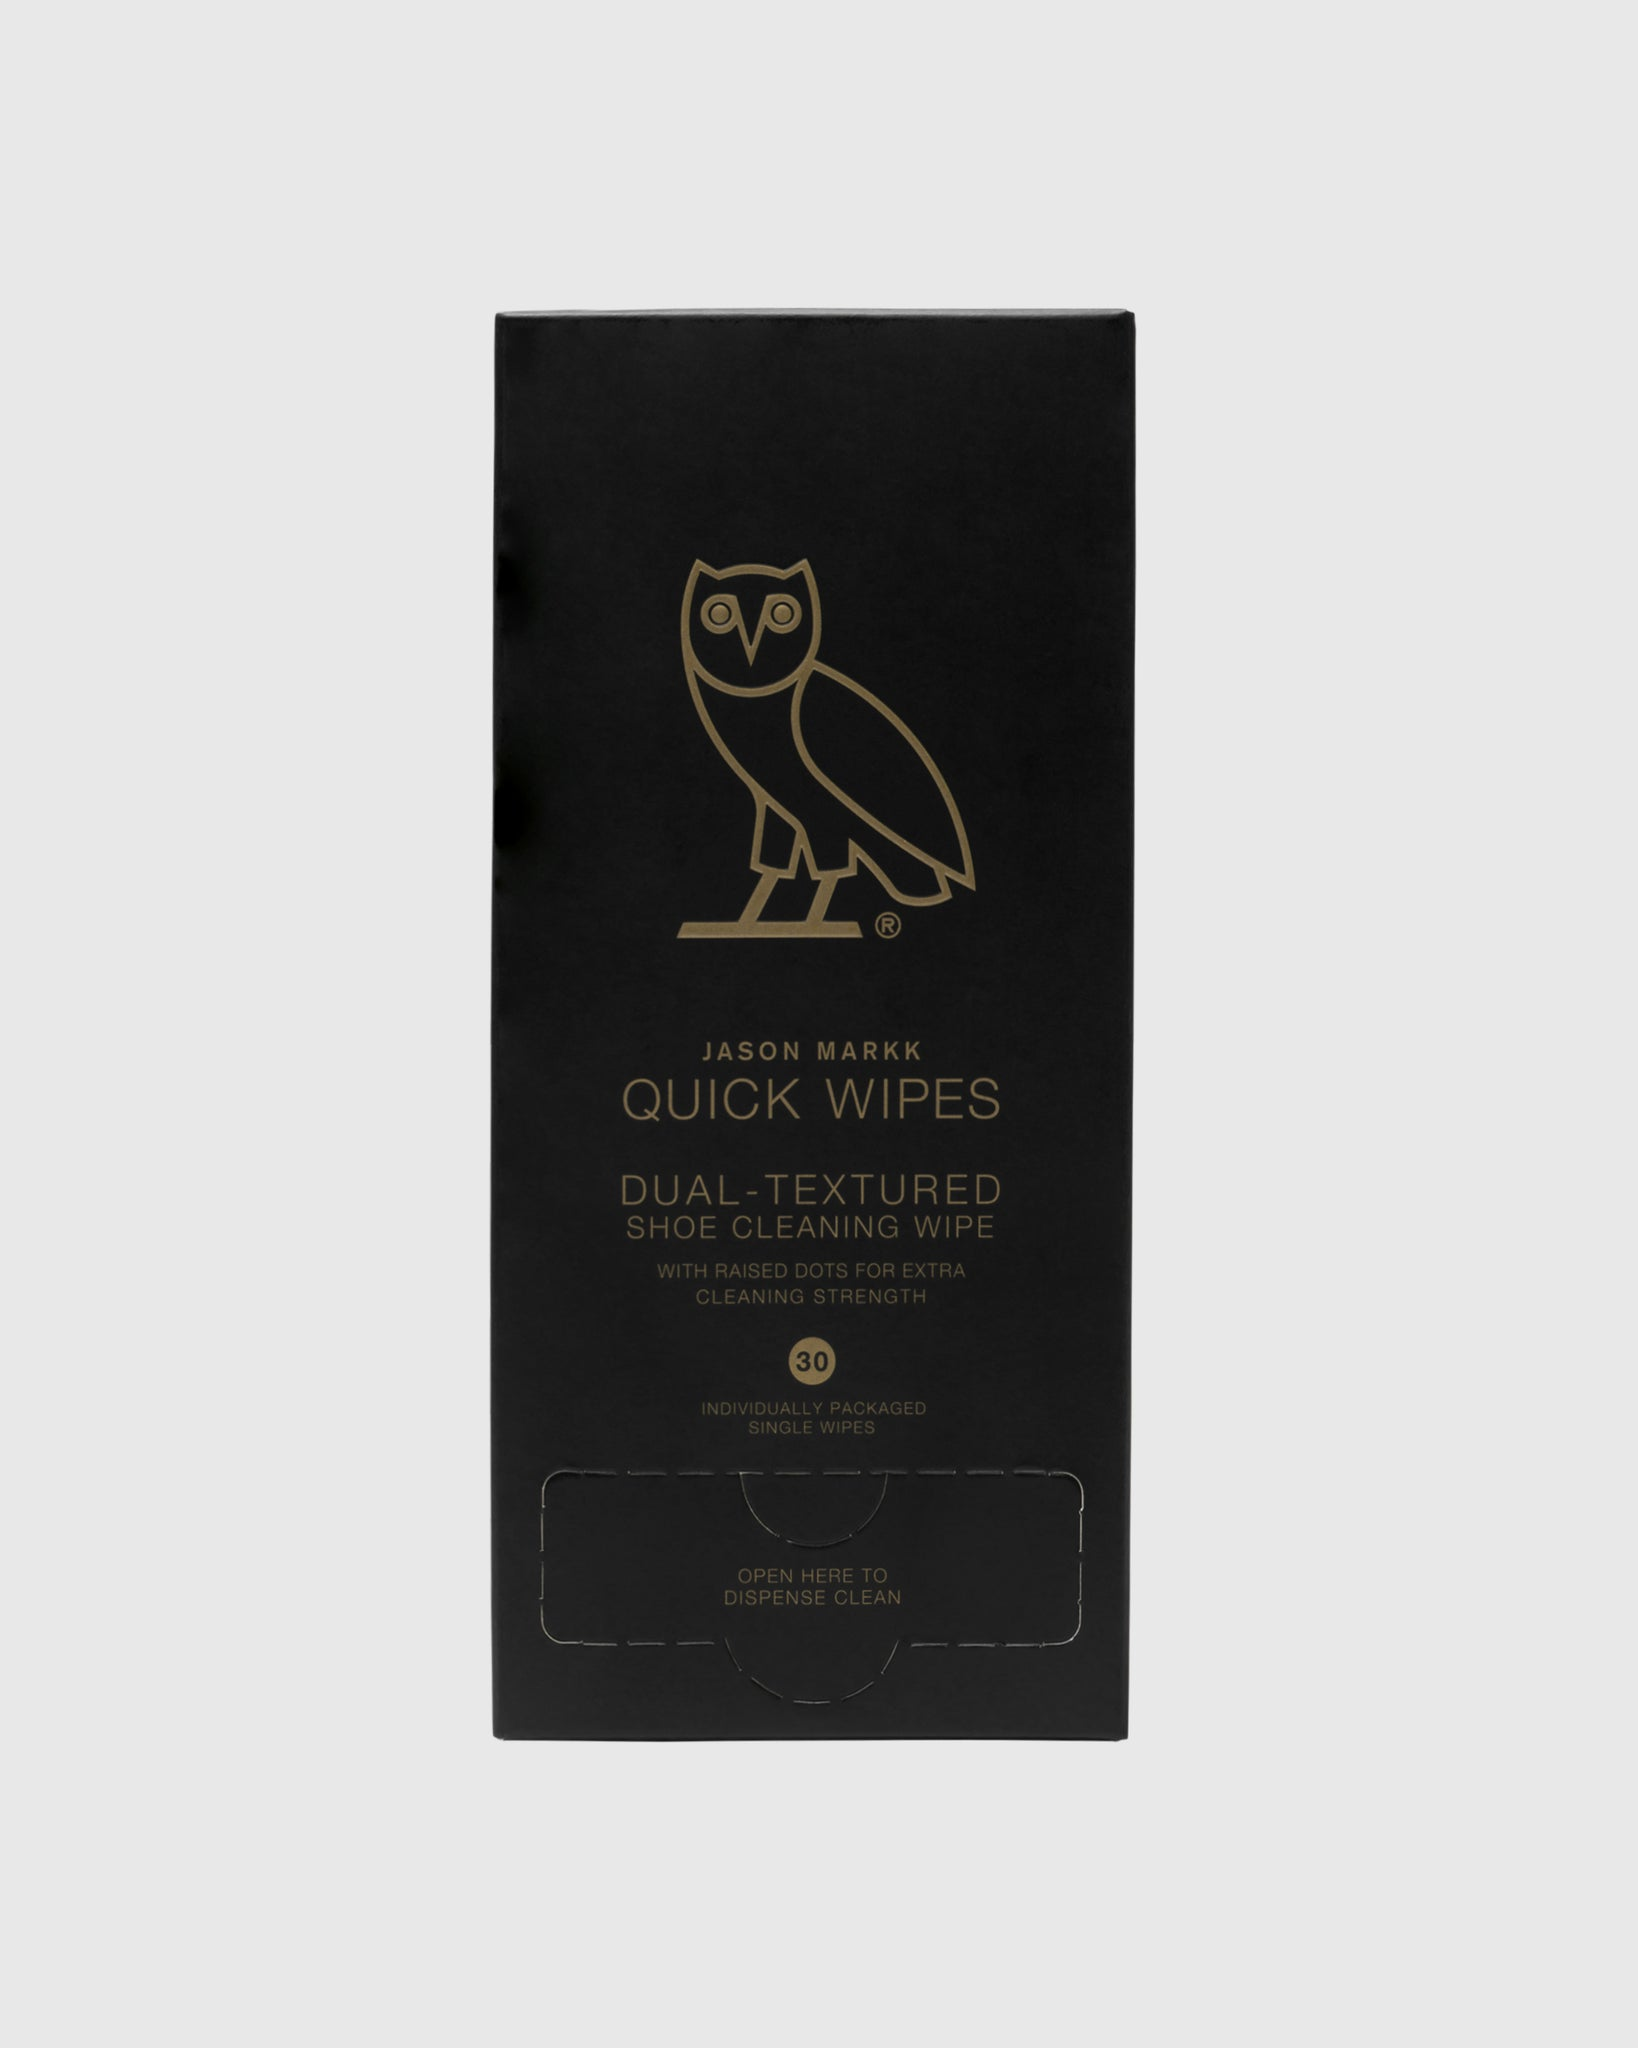 OVO x JASON MARKK QUICK WIPES - 30 PACK